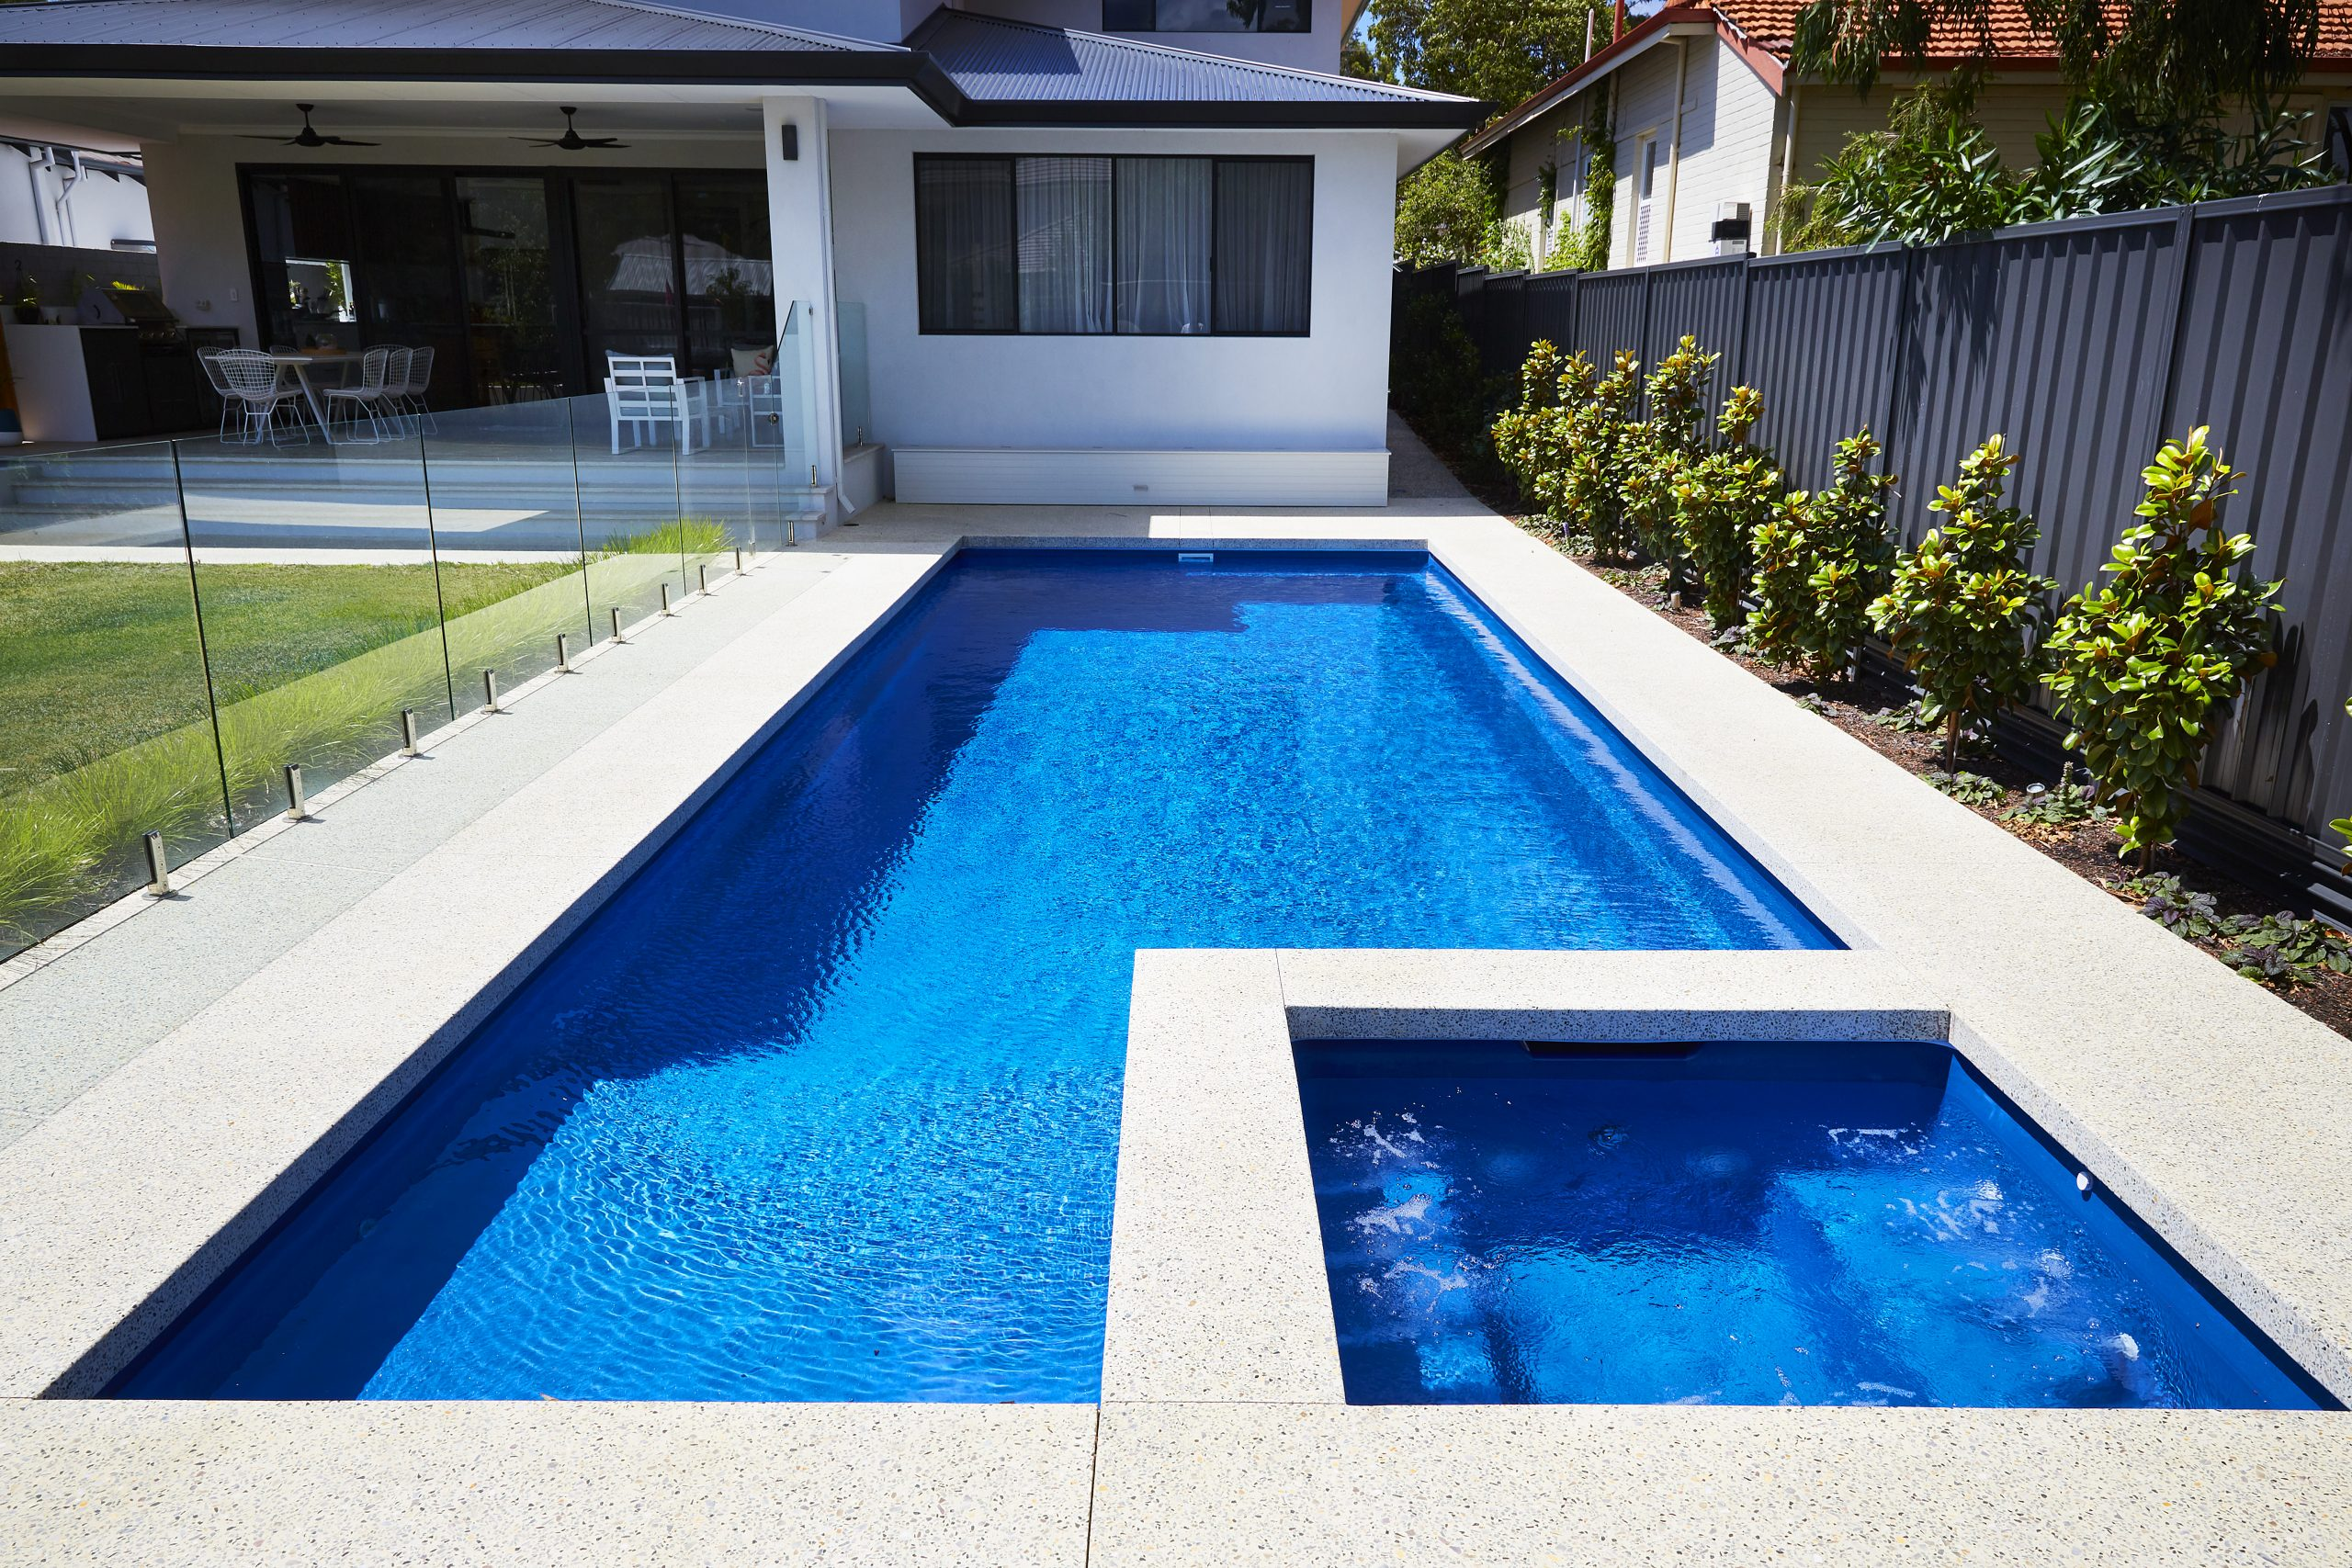 what-colours-can-fibreglass-pools-be2